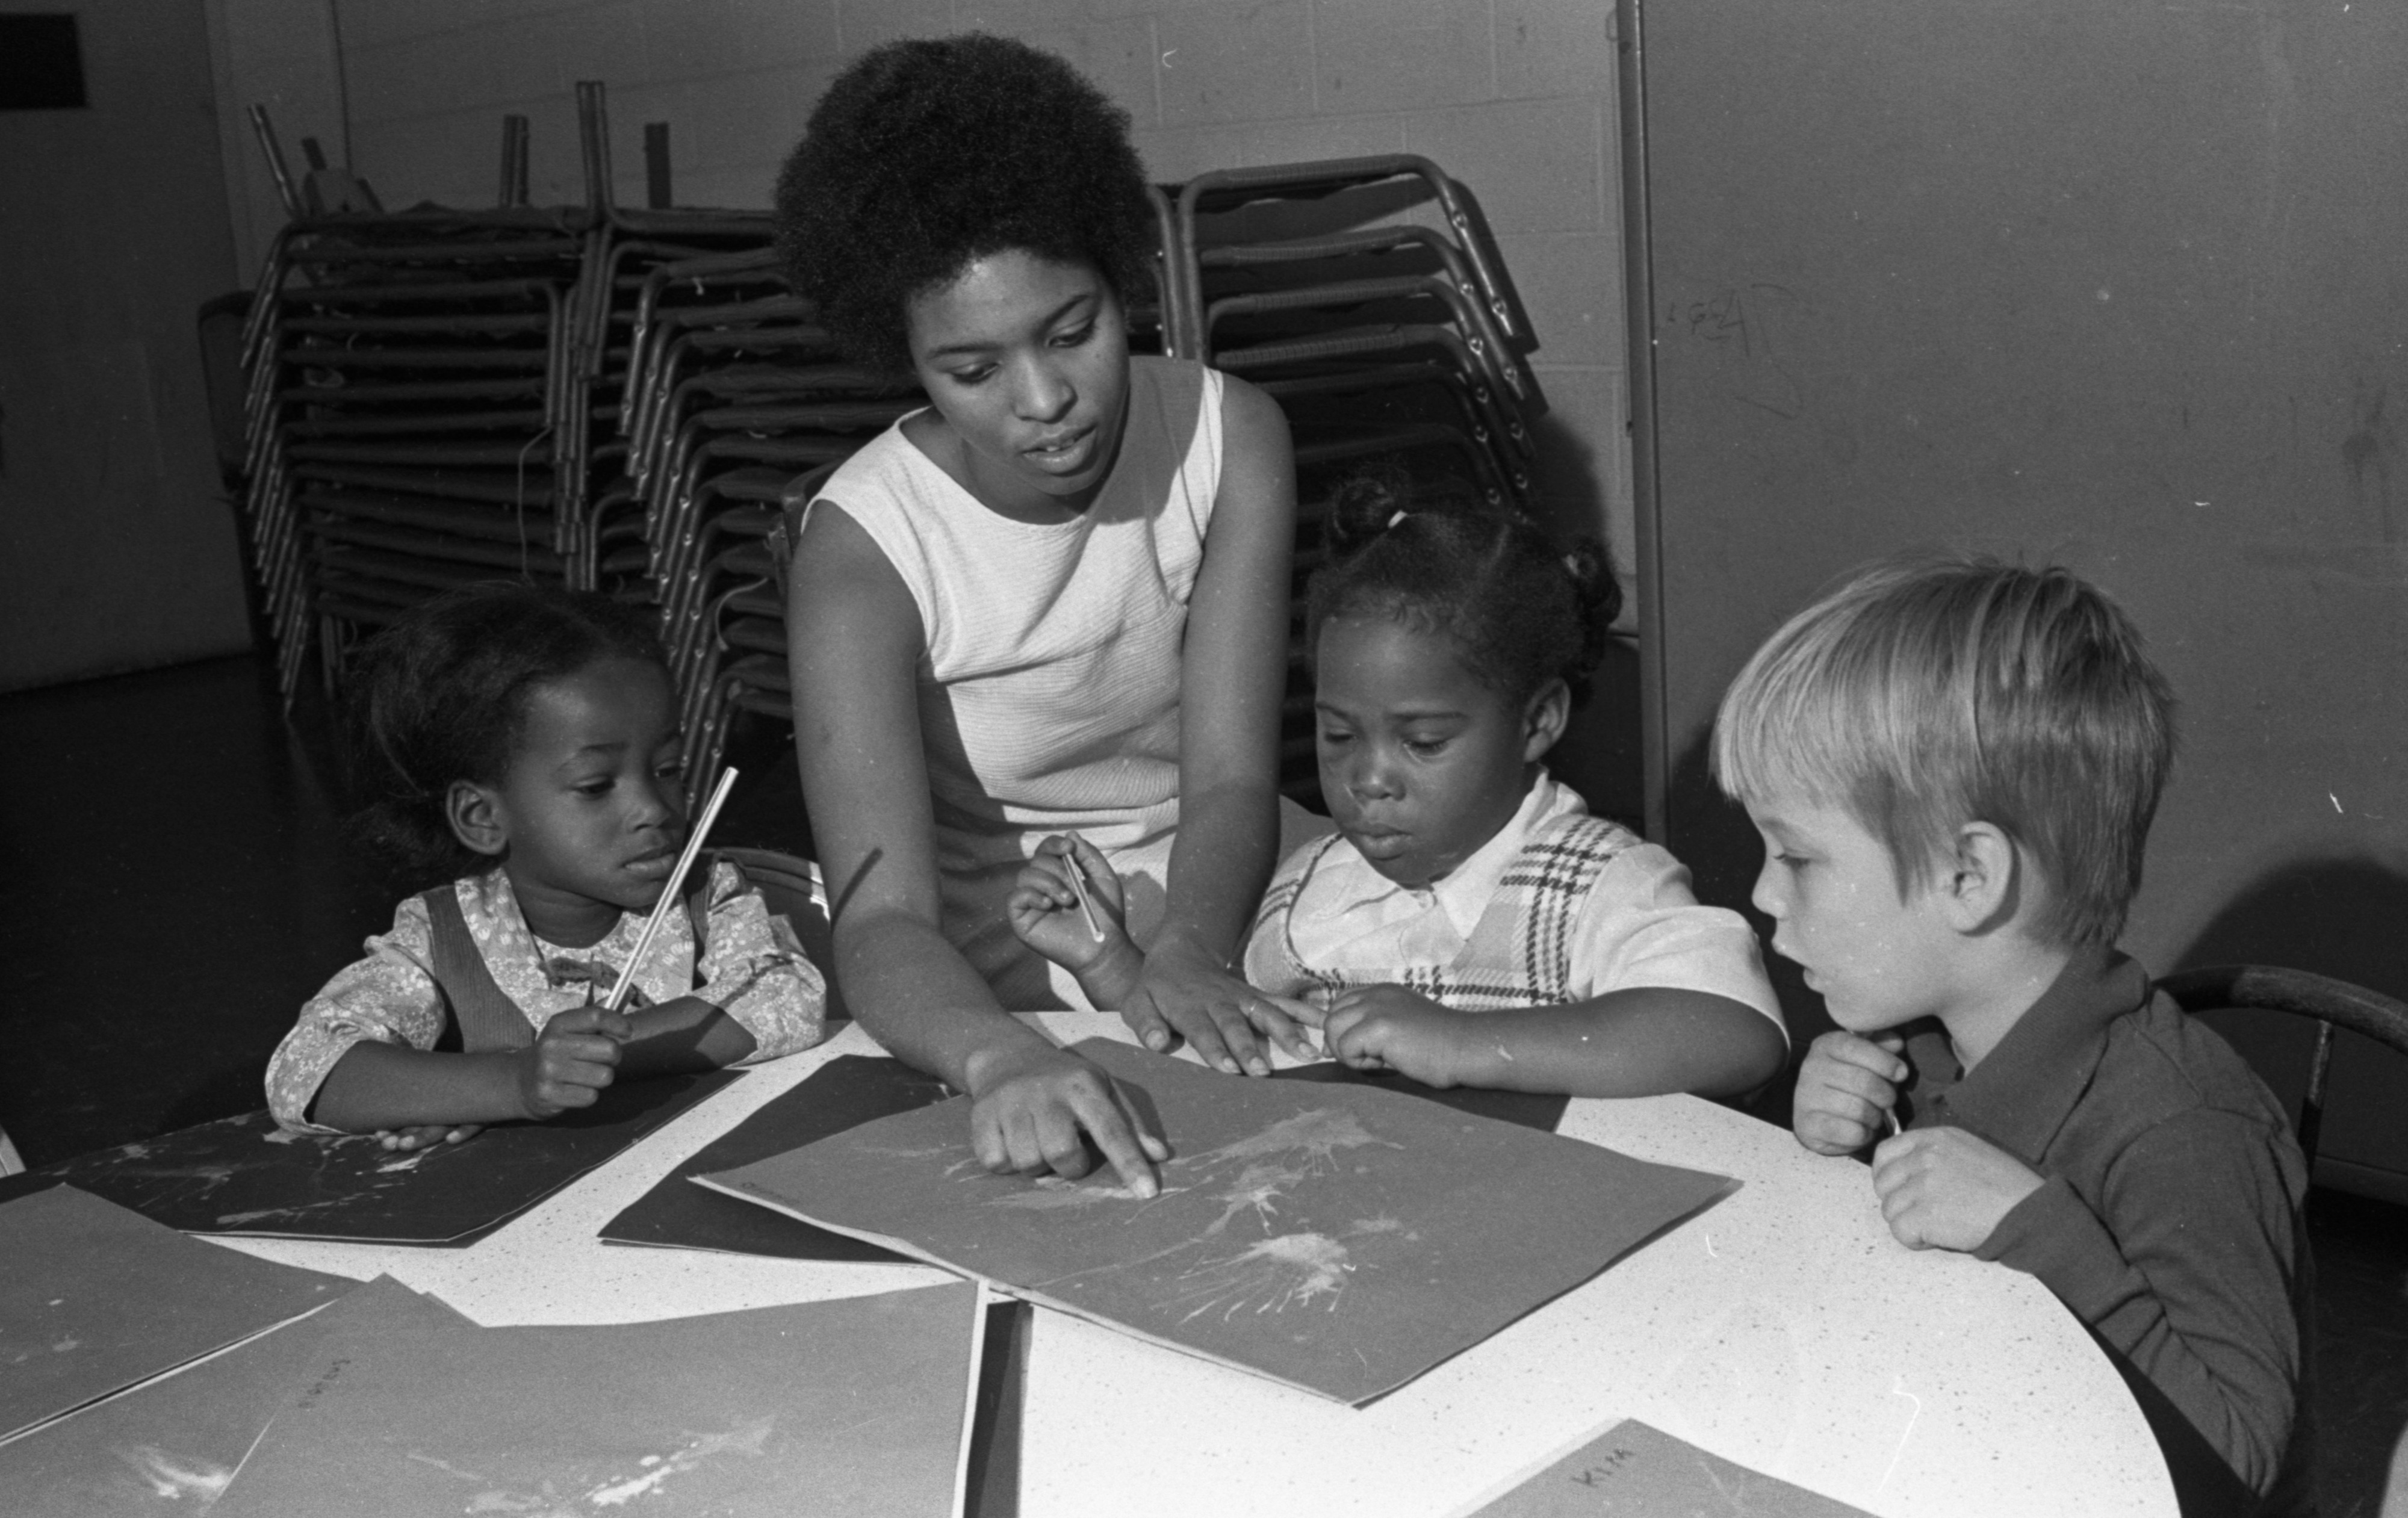 Second Baptist Church Day Care Center Children Create Artwork, November 1971 image